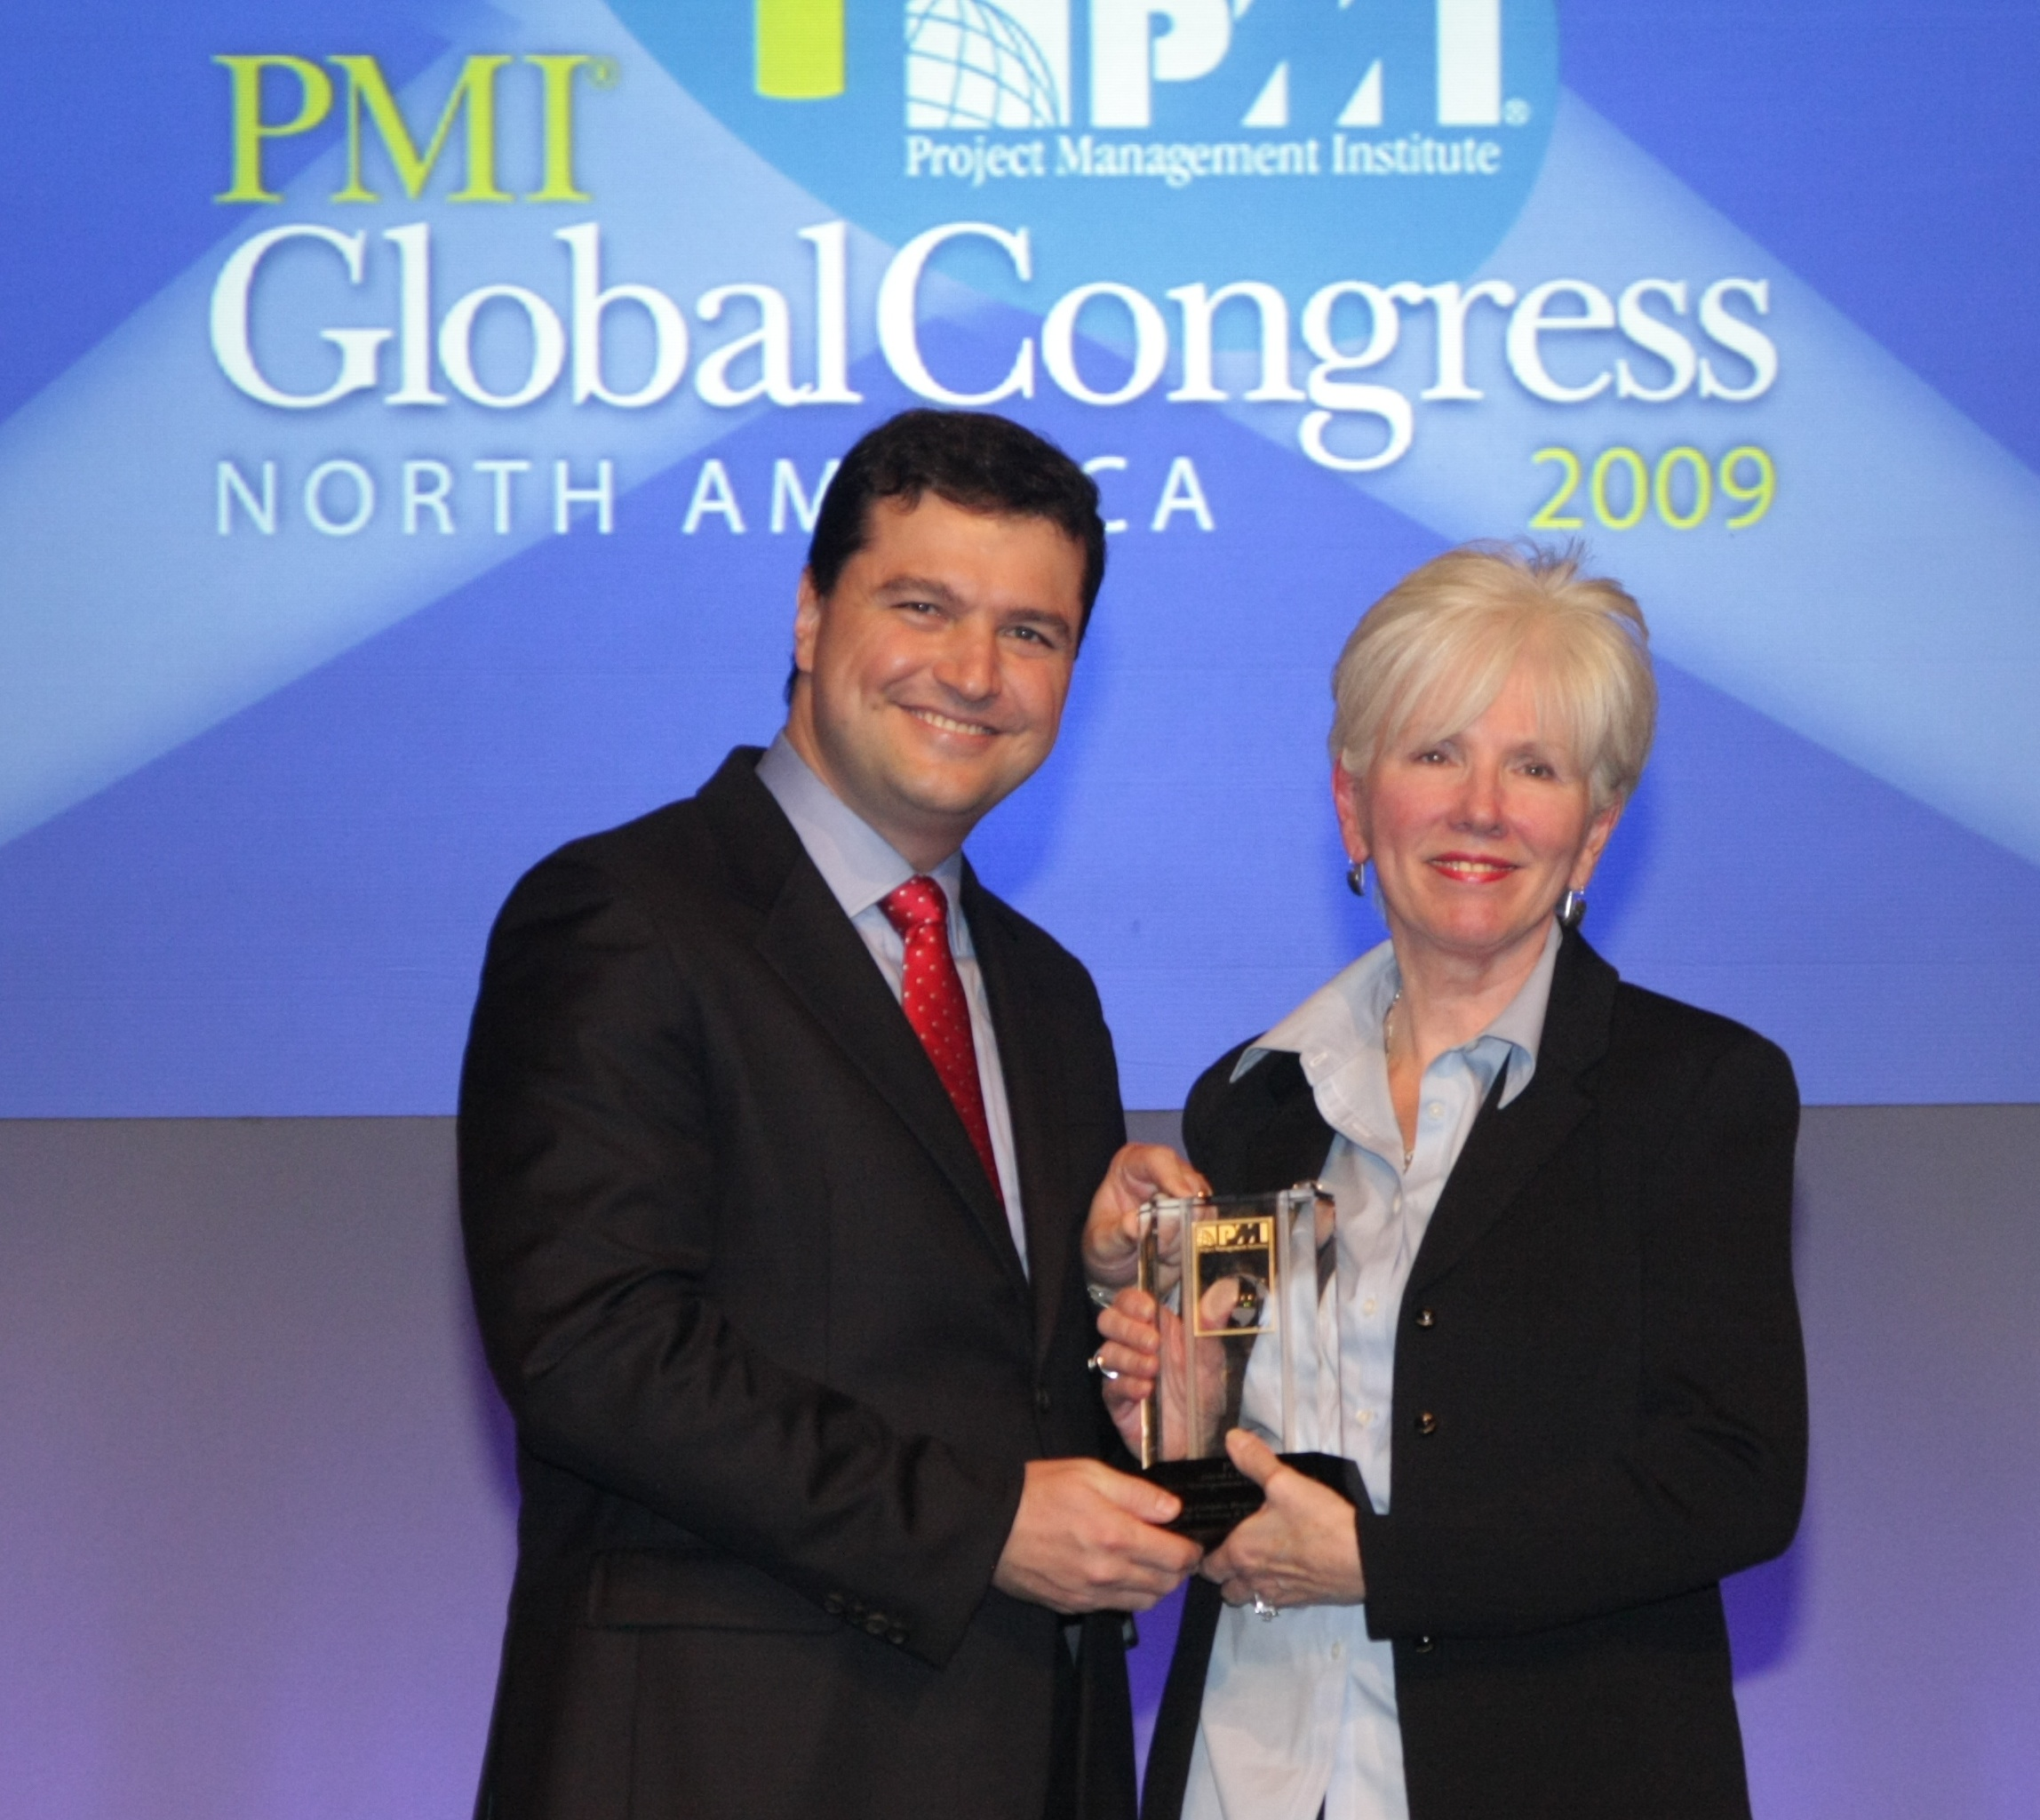 PMI 2009 Award Winner